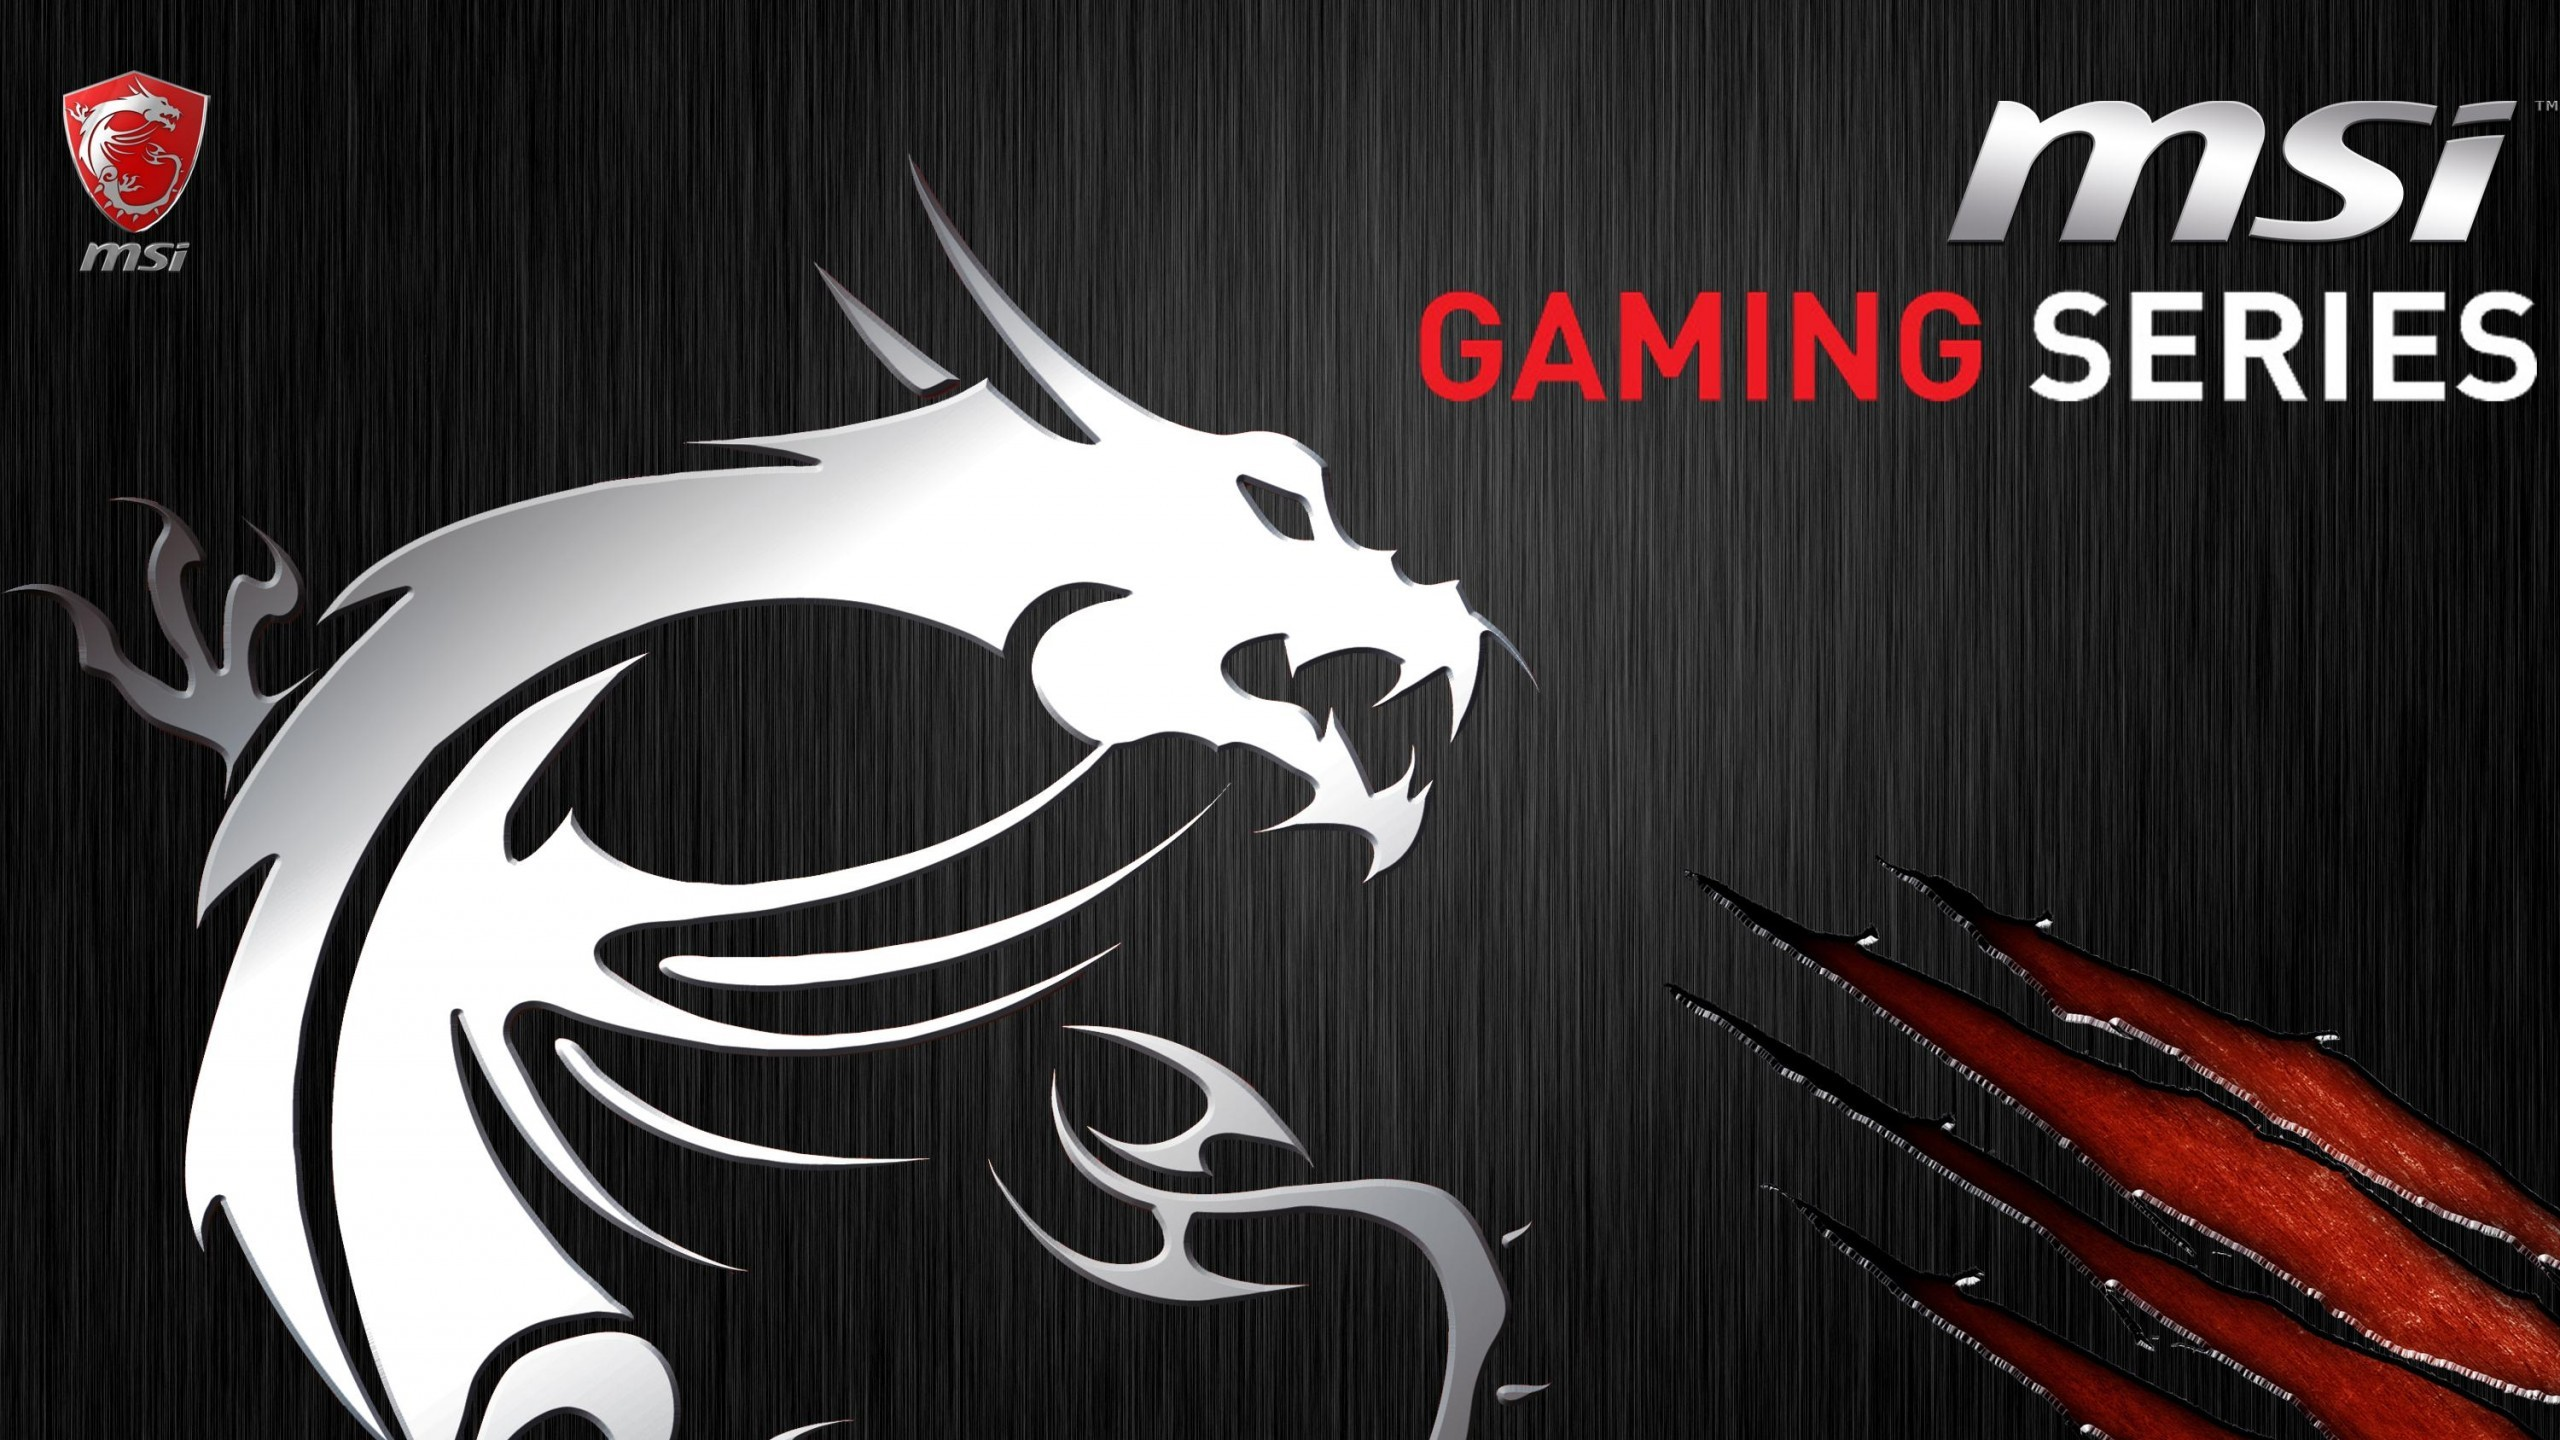 2560x1440 Msi gaming Wallpaper -